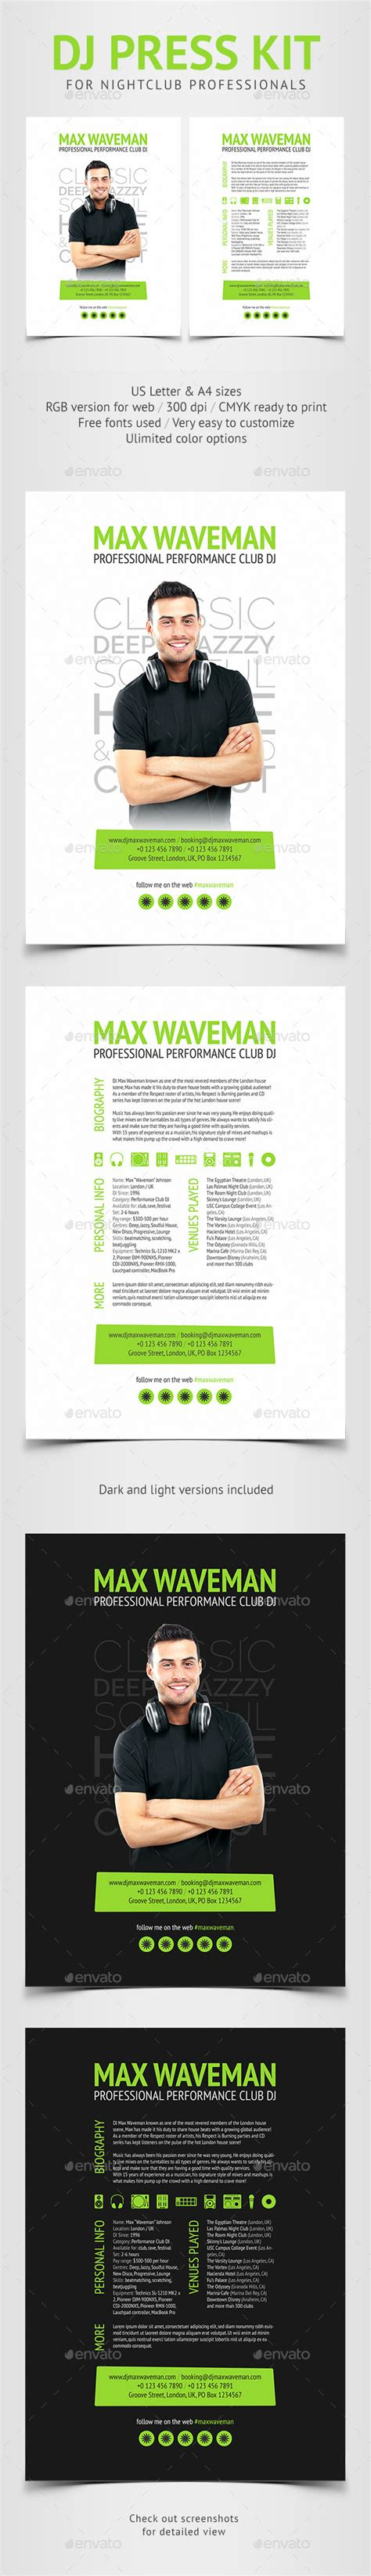 Groove Dj Press Kit Resume Psd Template By Vinyljunkie Graphicriver Free Press Kit Template Psd